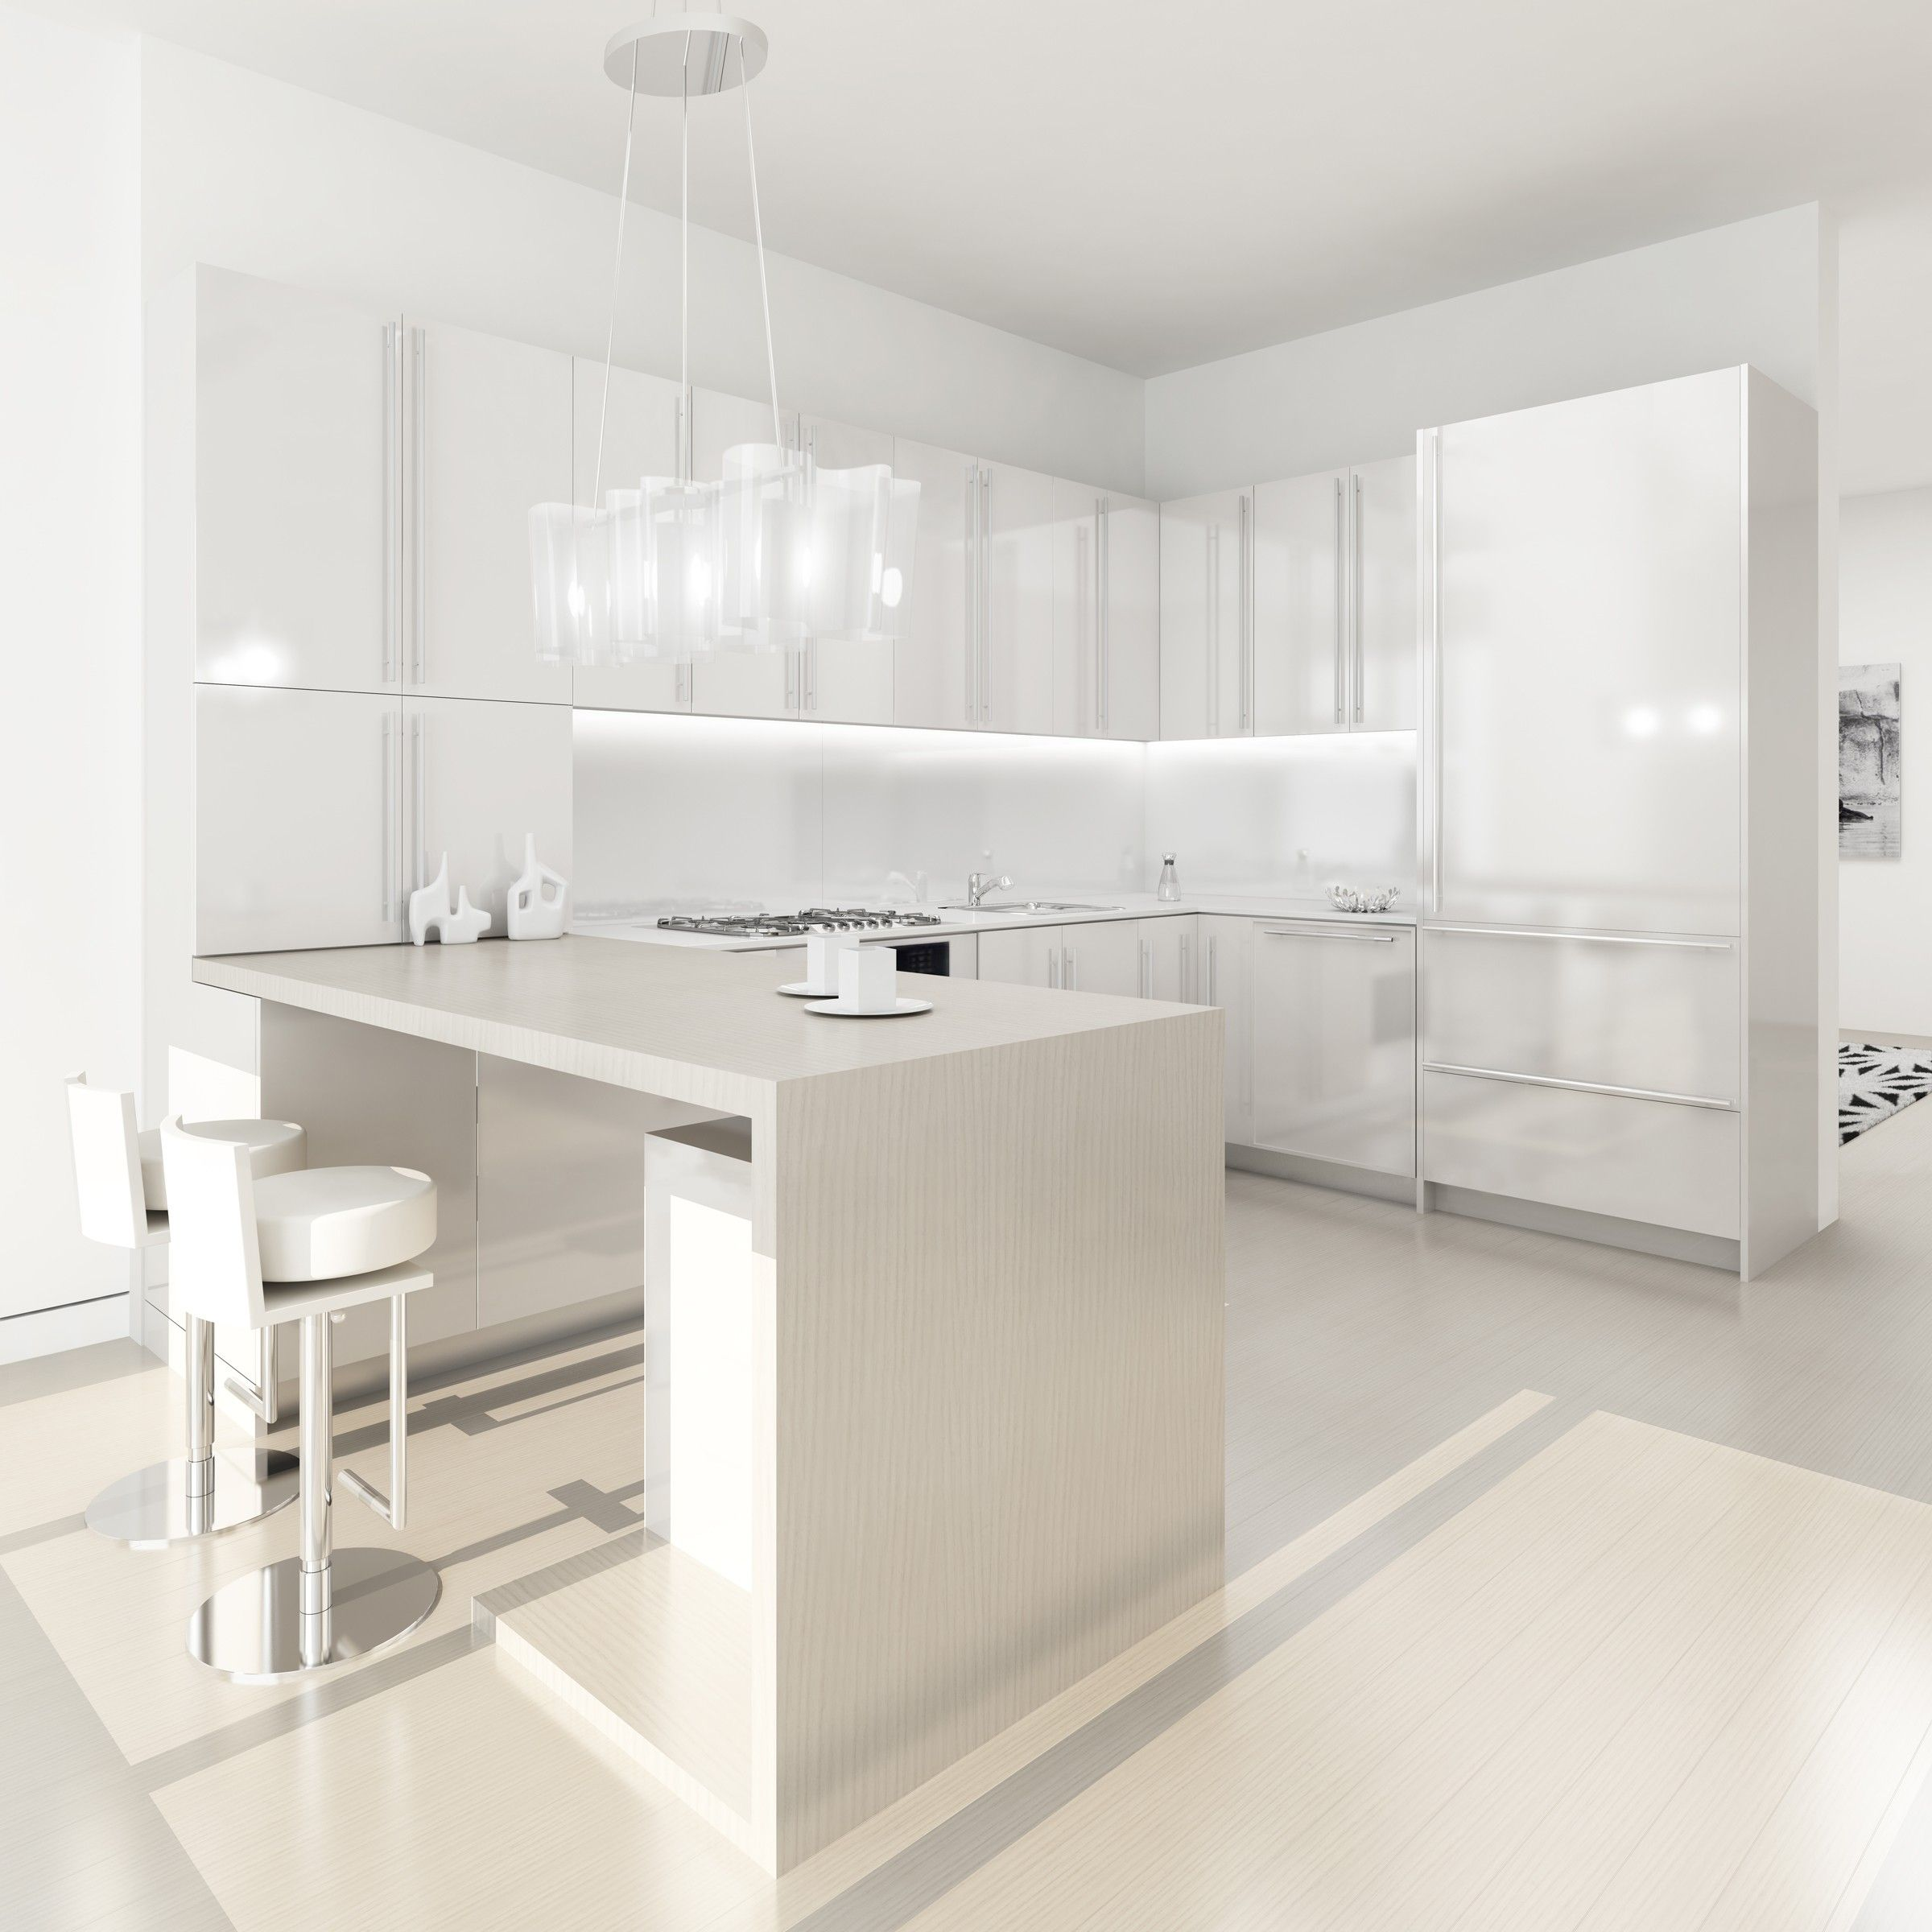 30 Modern White Kitchen Design Ideas And Inspiration Modern White Kitchens Kitchens And Modern